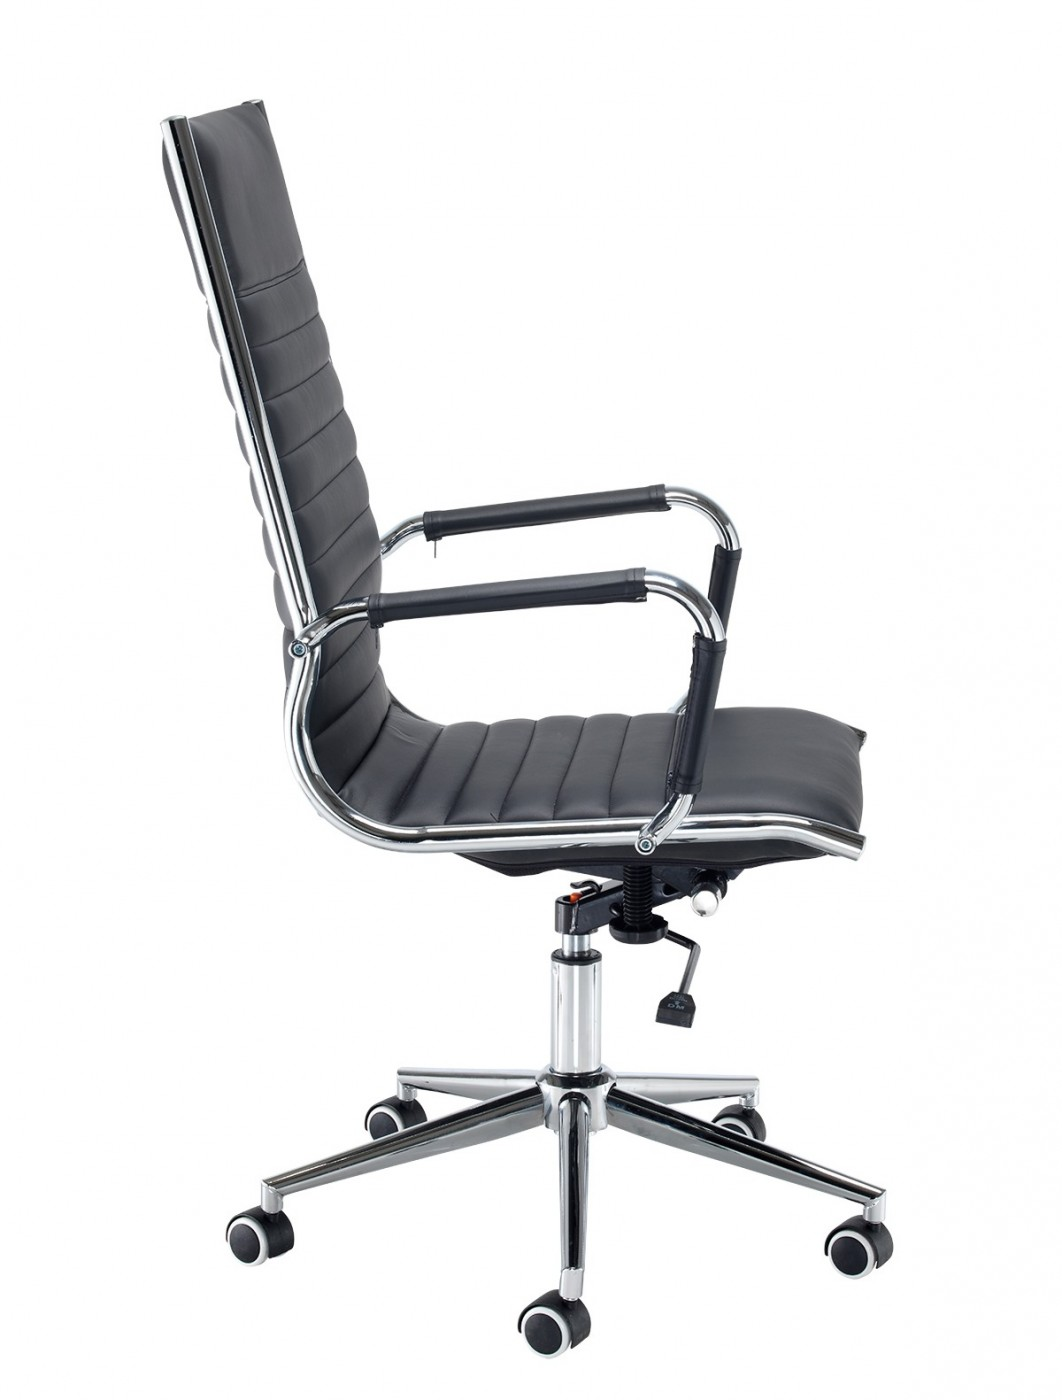 Bari Executive Leather Faced High Back Chair BARI300T1